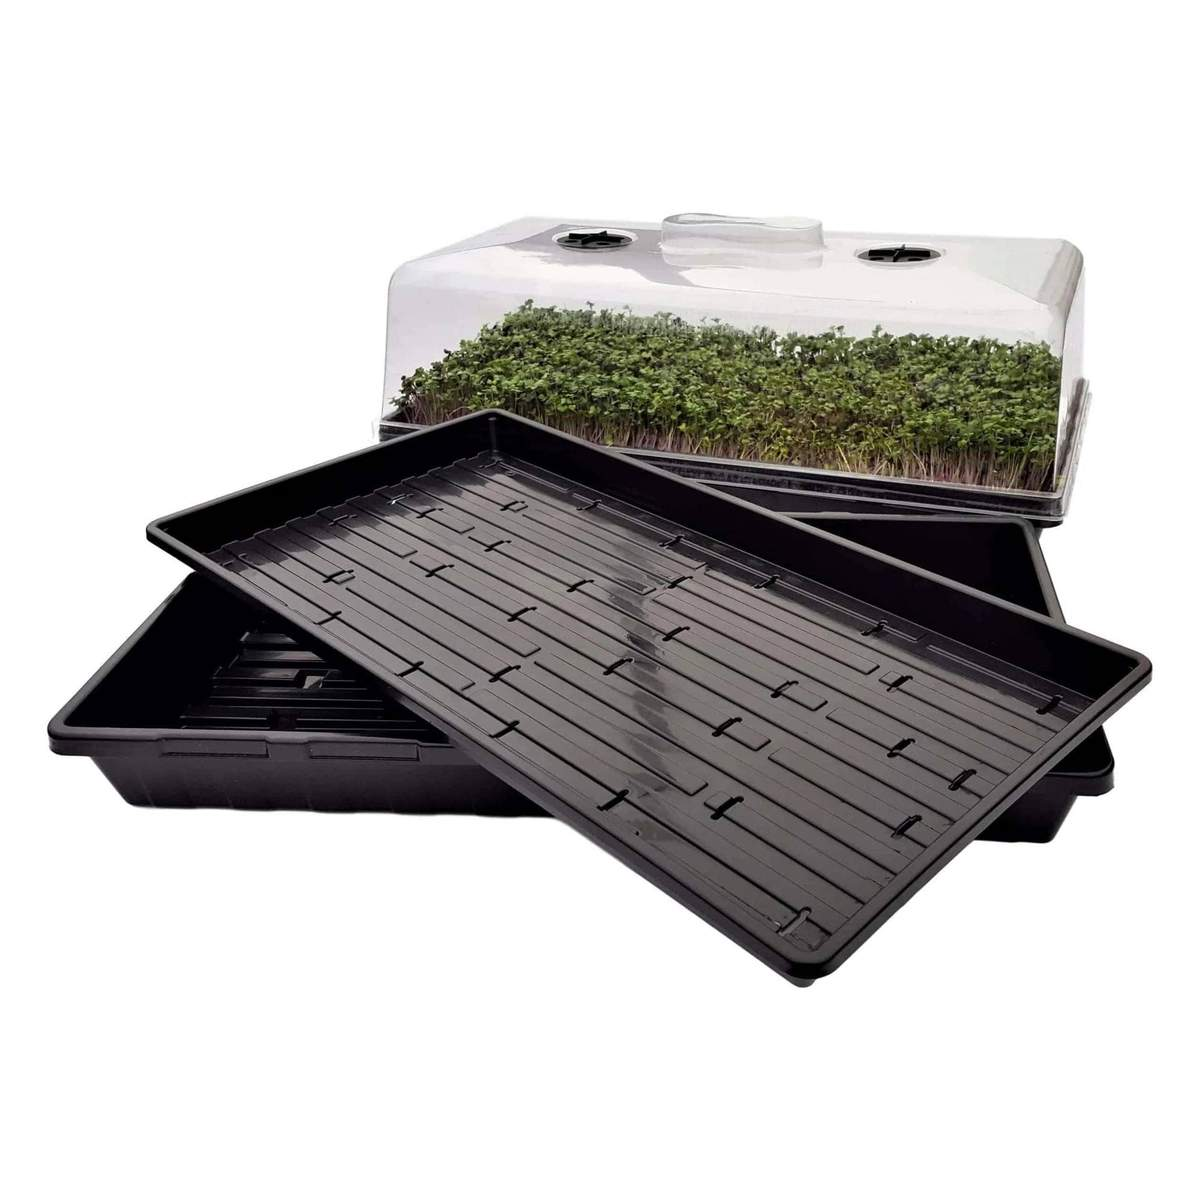 Microgreen Tray Grower Kit Bootstrap